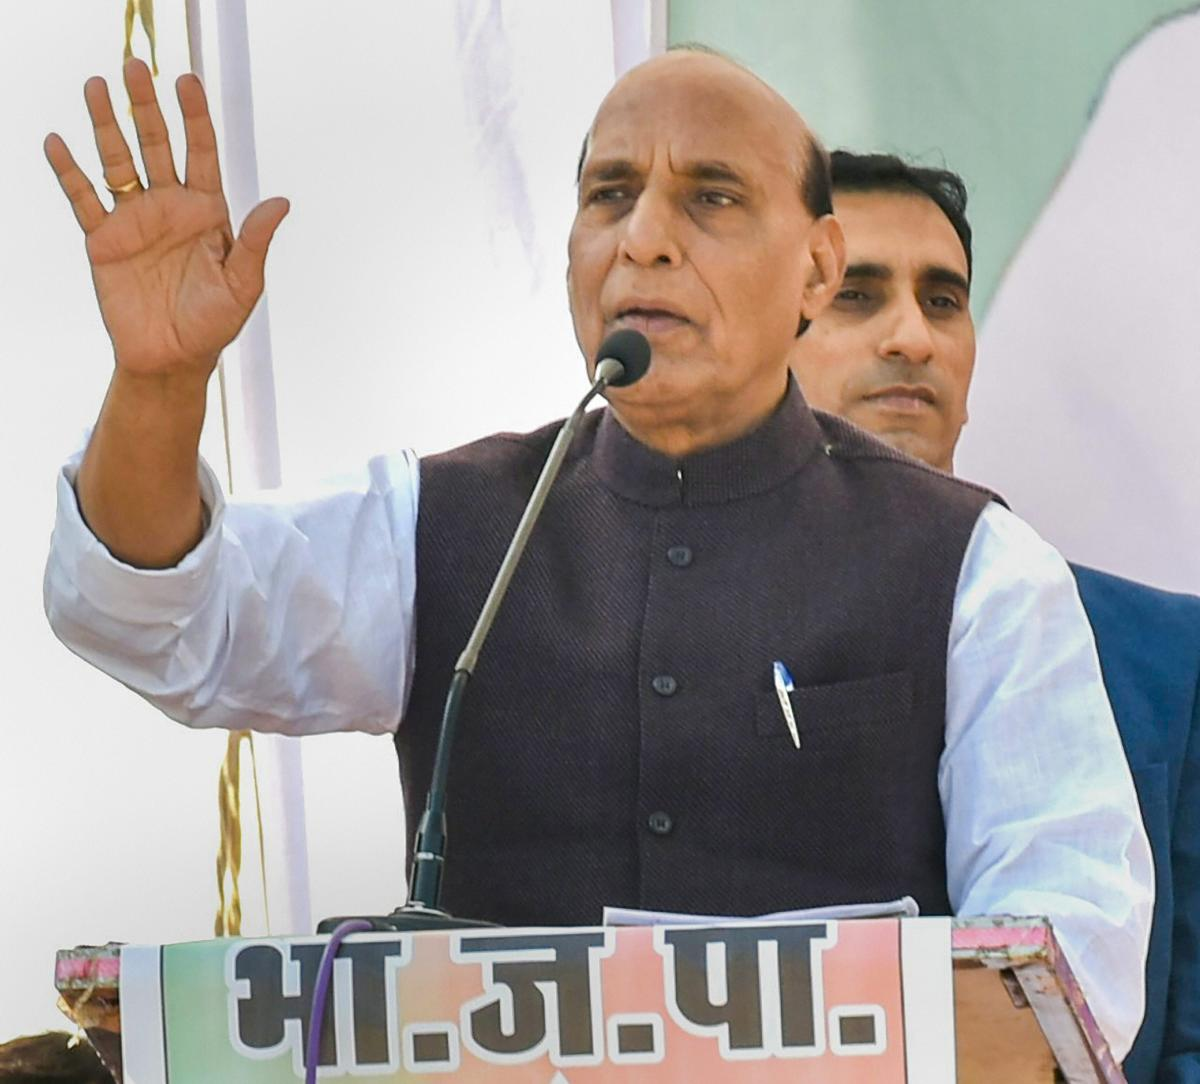 Home Minister Rajnath Singh said Pakistan could seek India's help if it cannot handle the fight against terrorism alone. PTI file photo